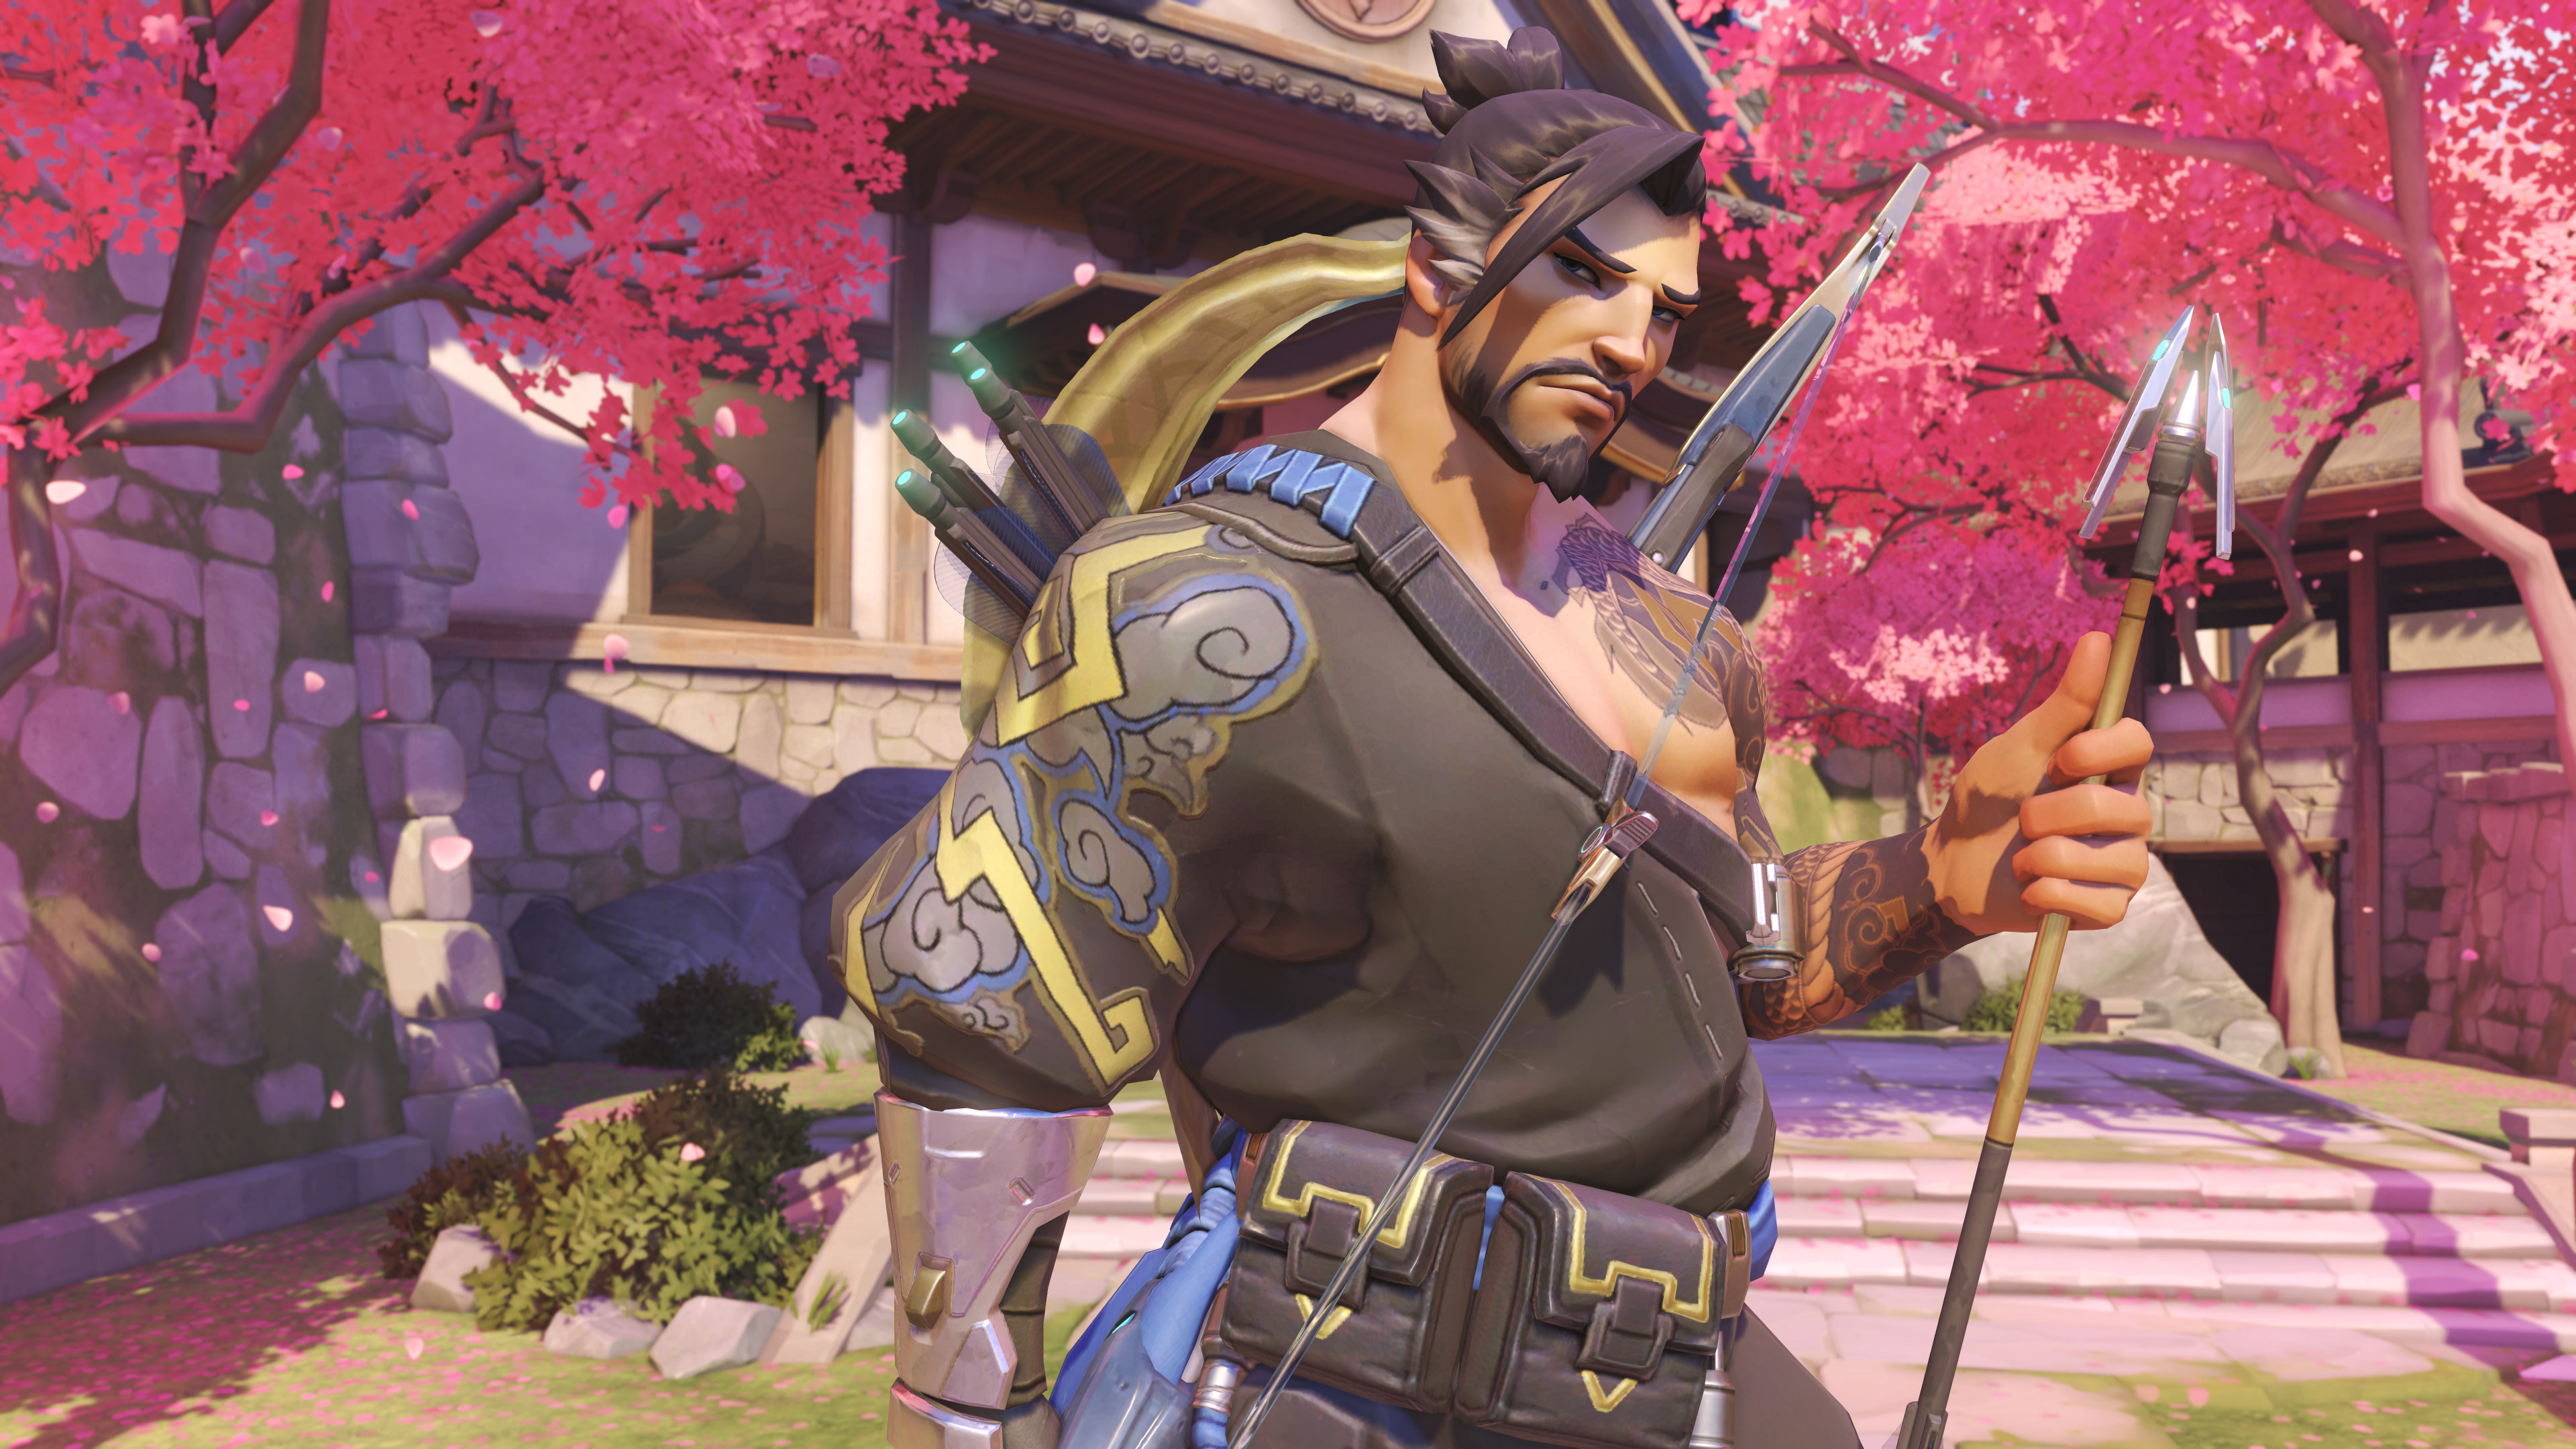 Overwatch Hanzo 4k Hd Games 4k Wallpapers Images